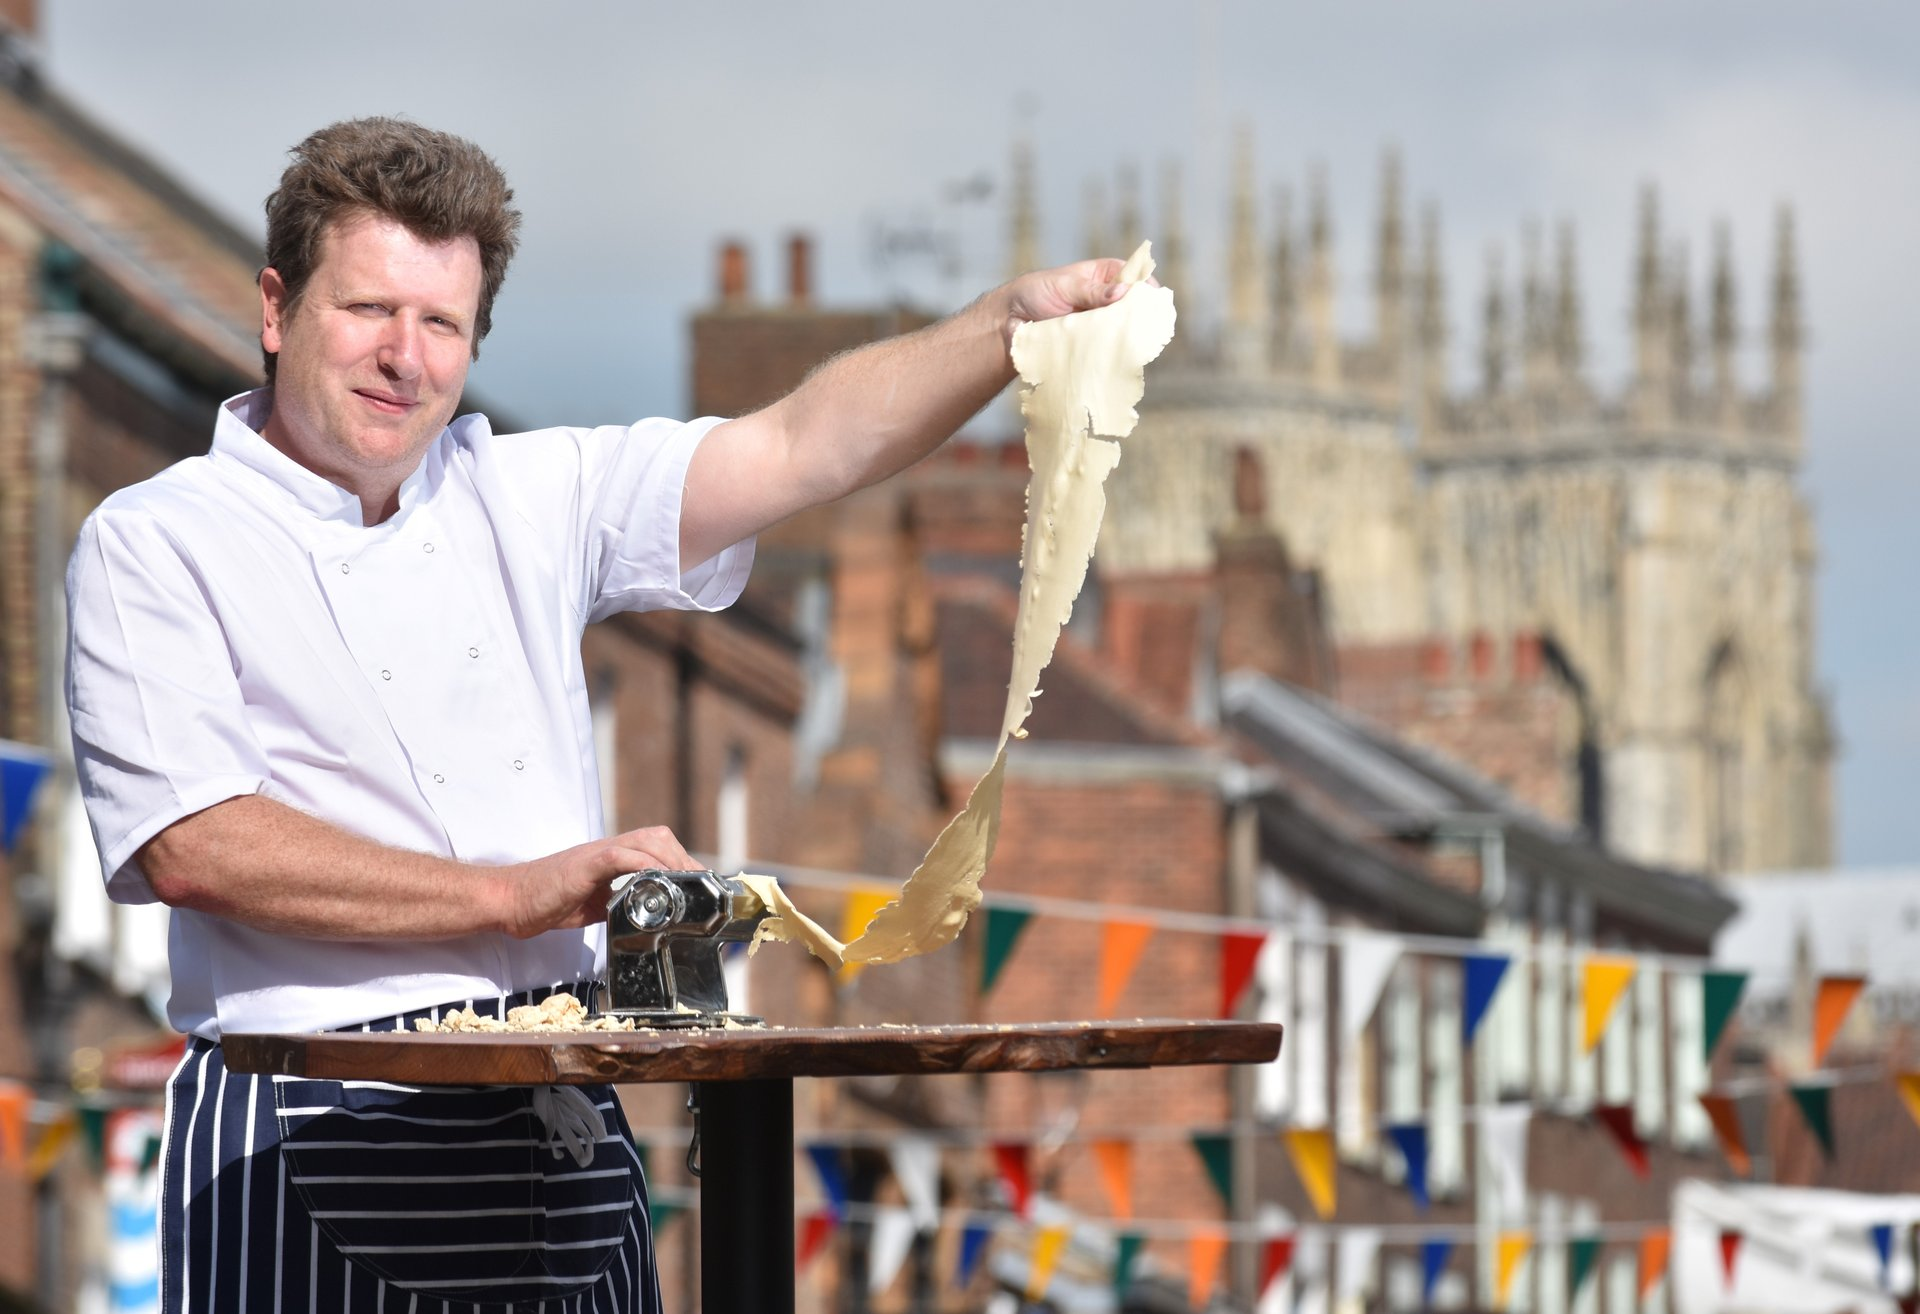 York Food Festival in England - Best Season 2019